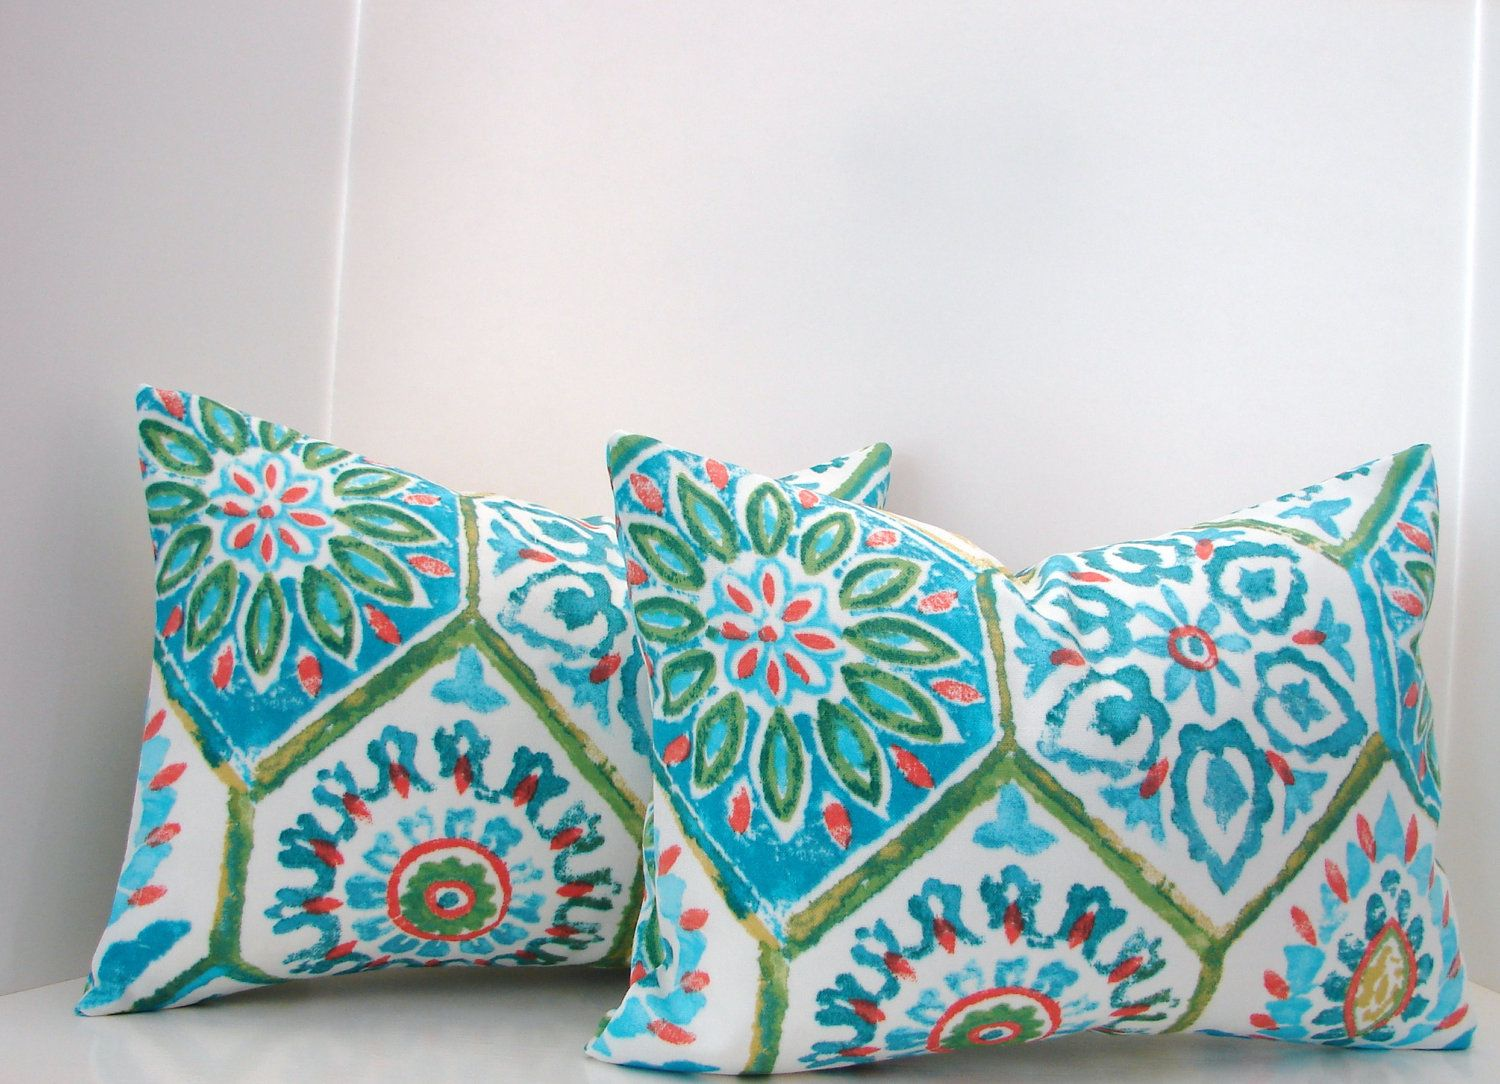 Etsy Throw Pillows Set Of 2 12 X 16 Lumbar Turquoisegreencoral Blue Outdoor